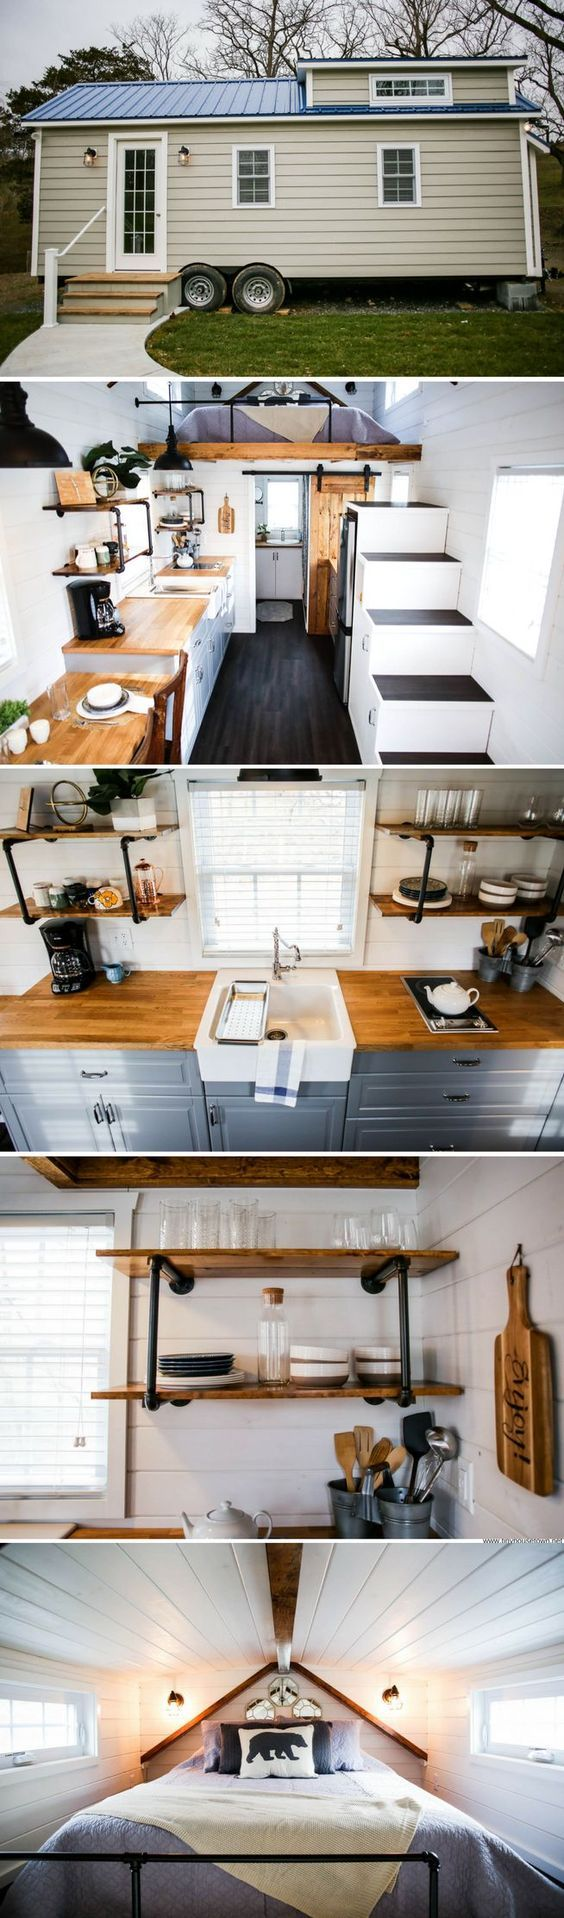 720 best Tiny Home images on Pinterest | Little houses, Small houses ...